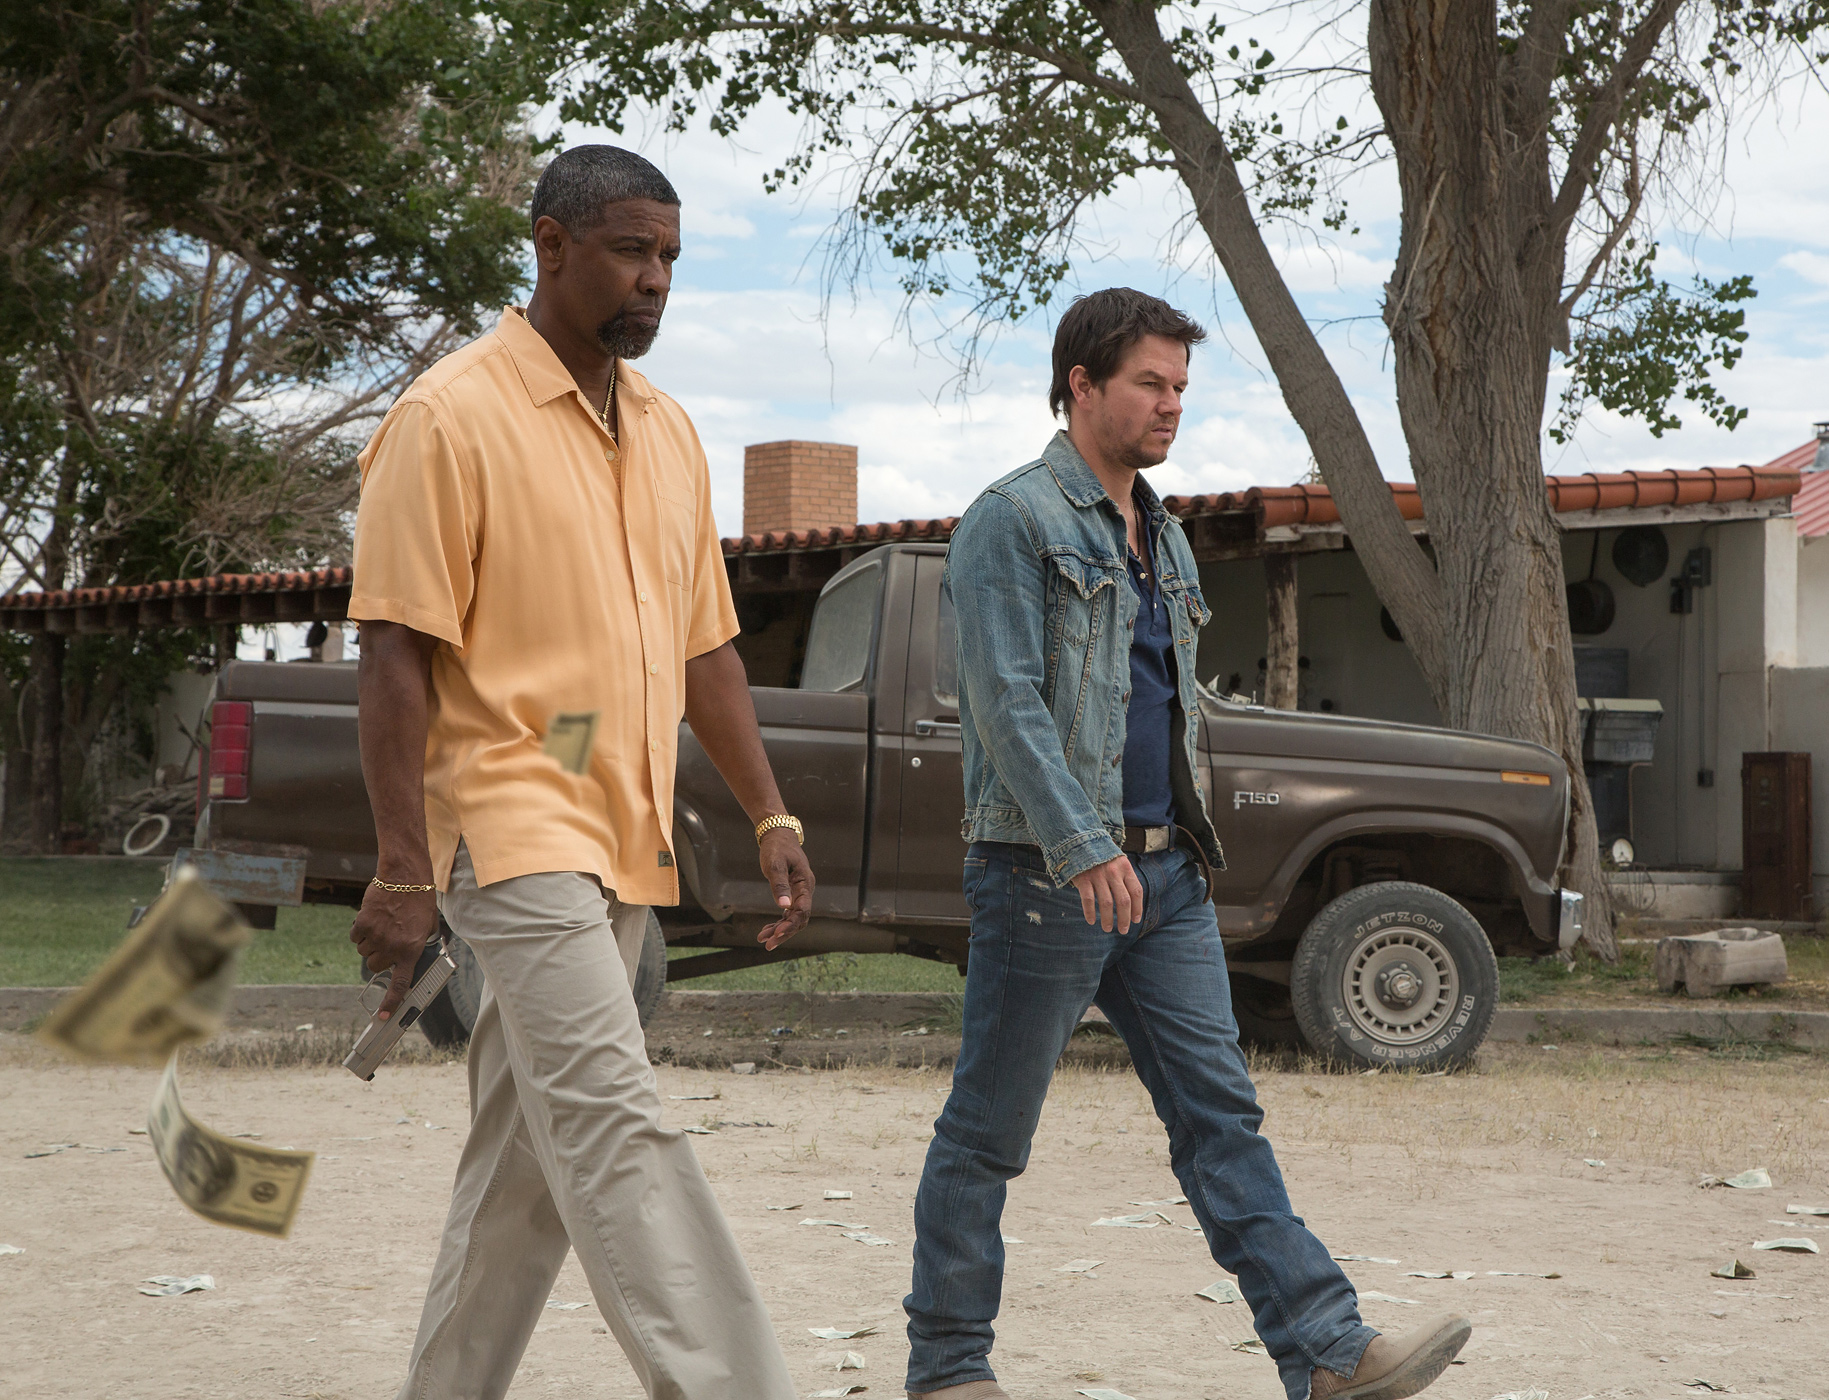 2 Guns (2013) starred Washington and Mark Wahlberg. It might be worth watching the next time you're on a plane if you like action films and/or Washington and/or Wahlberg.